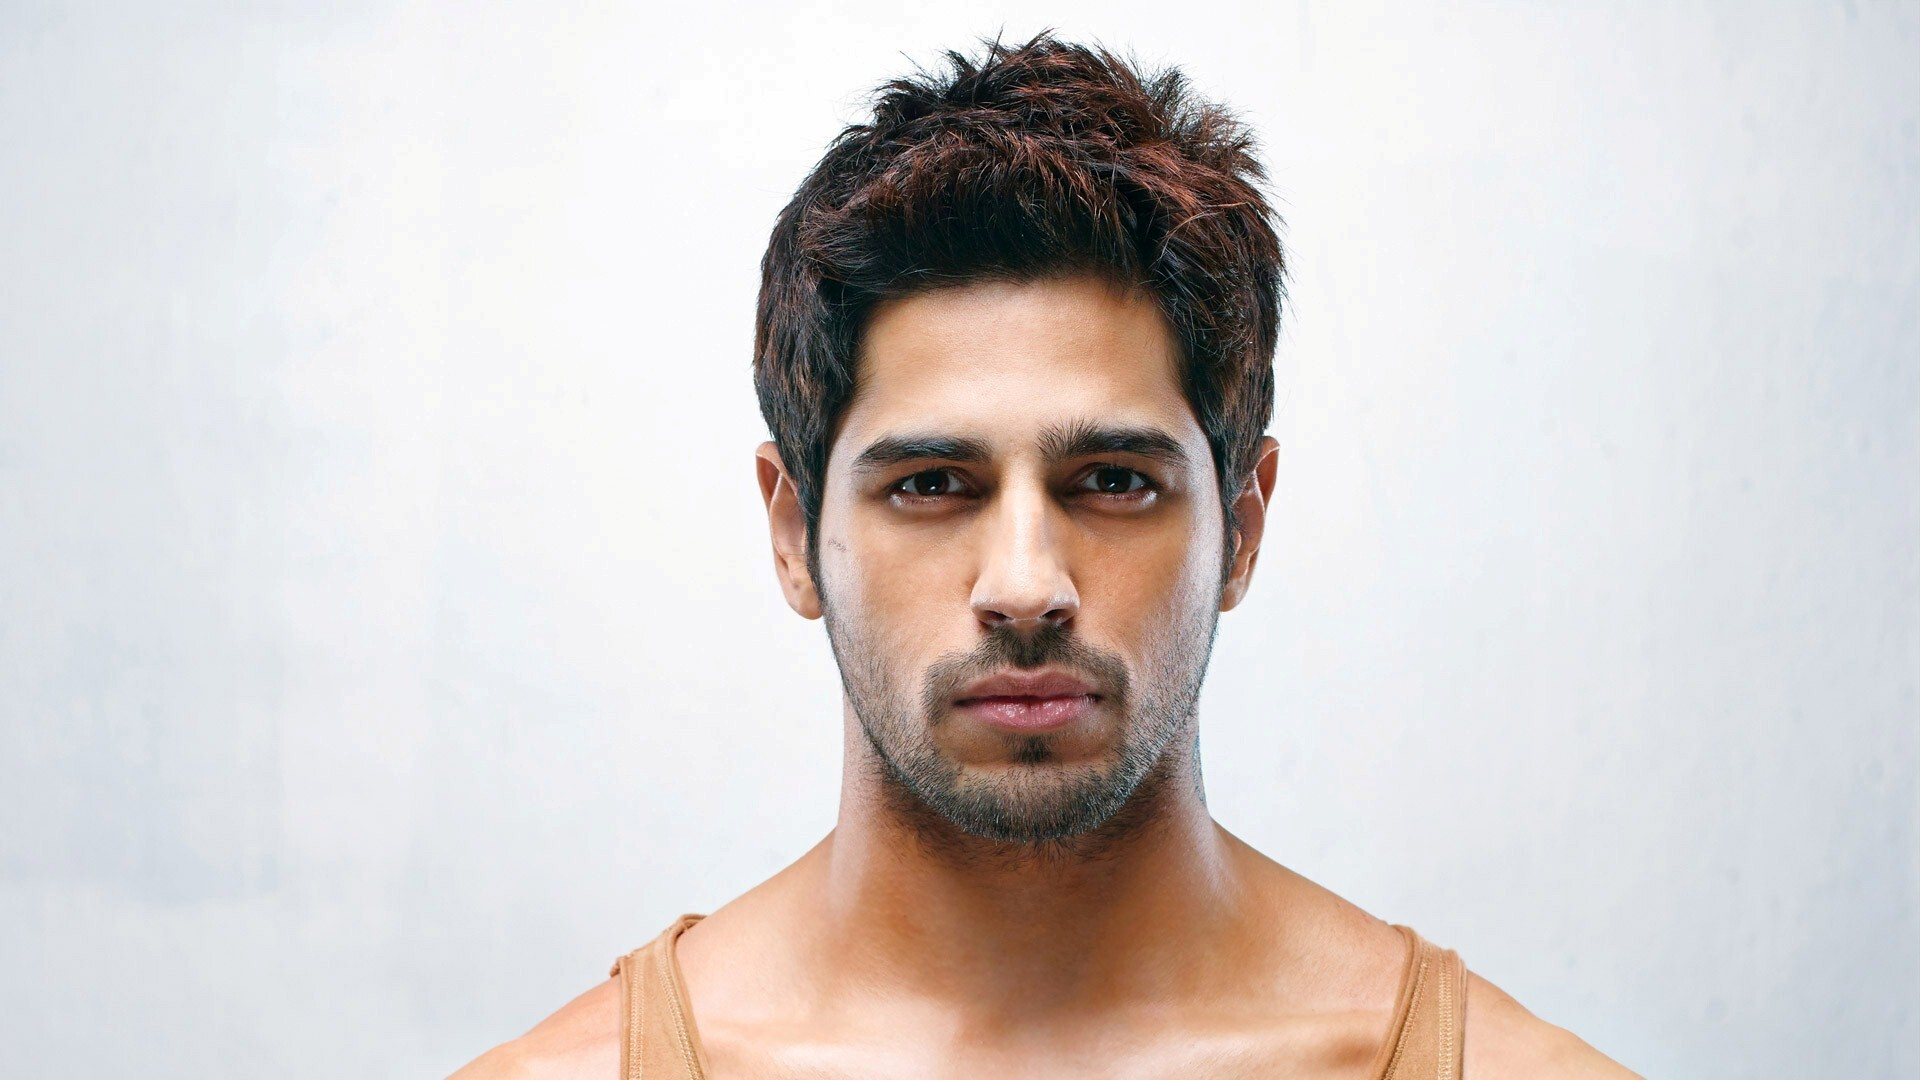 Actors Wallpapers Download: Sidharth Malhotra New Bollywood Handsome Actor HD